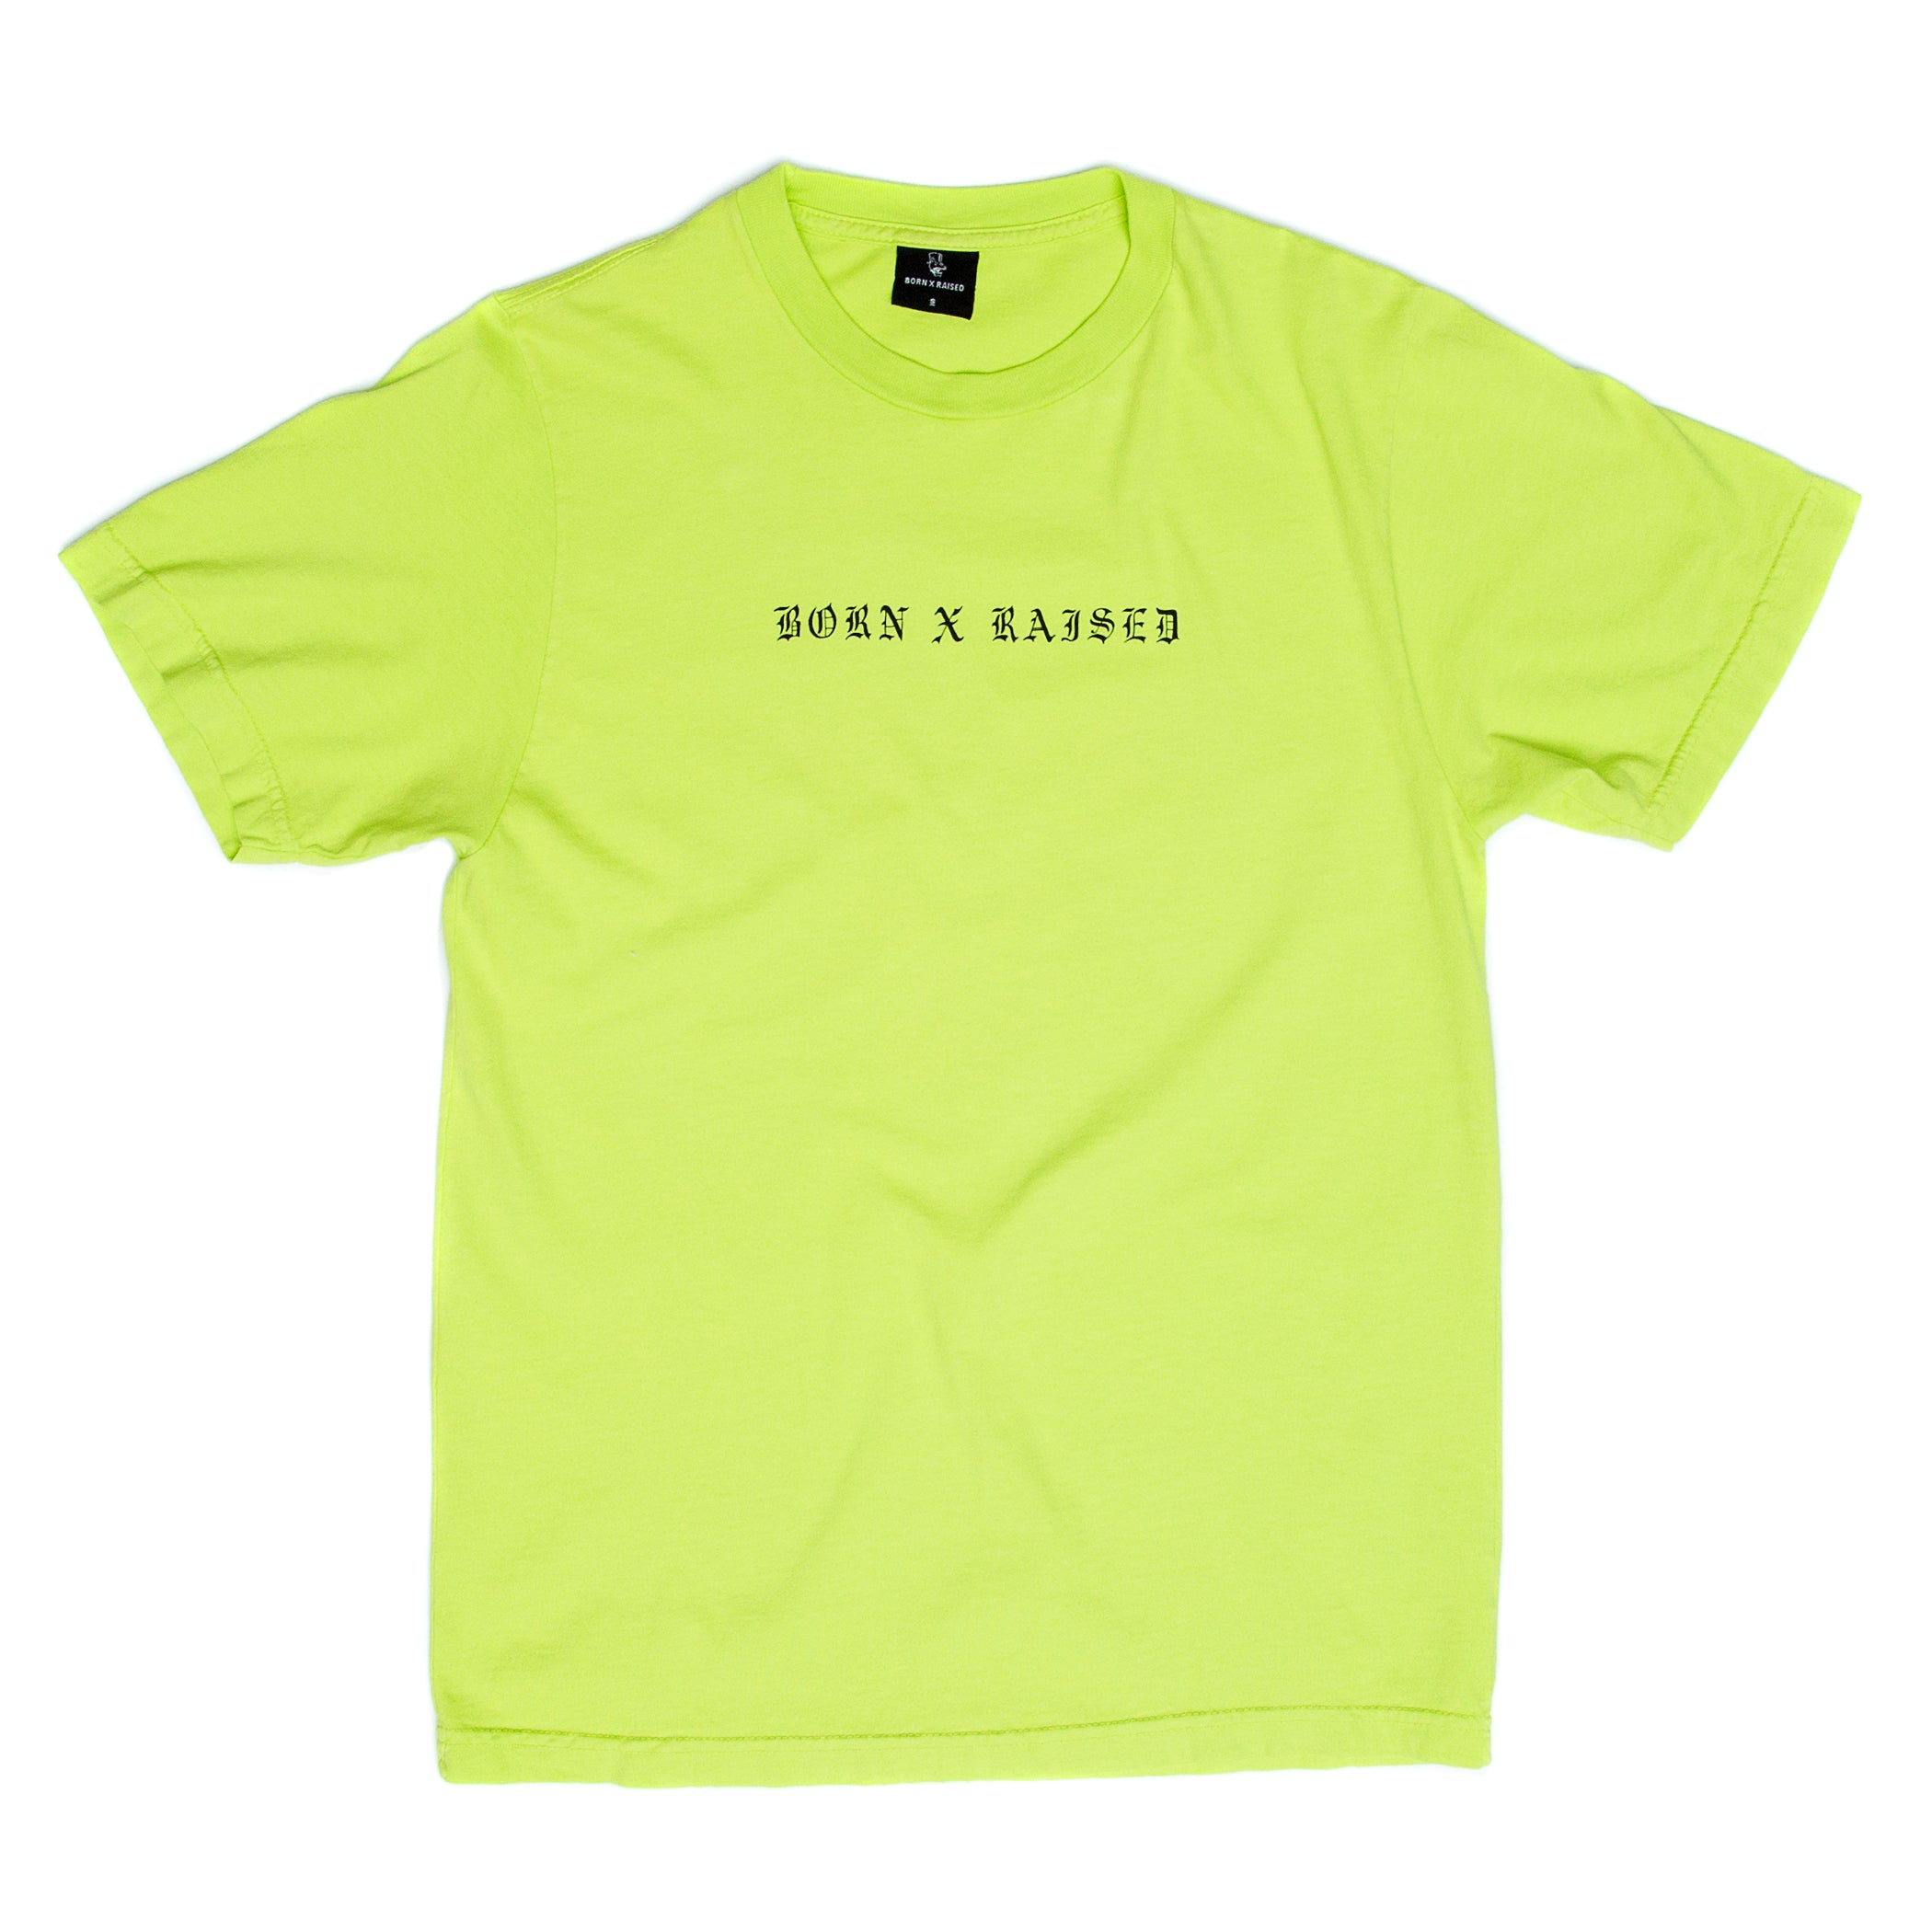 Born X Raised - Swayze T-Shirt